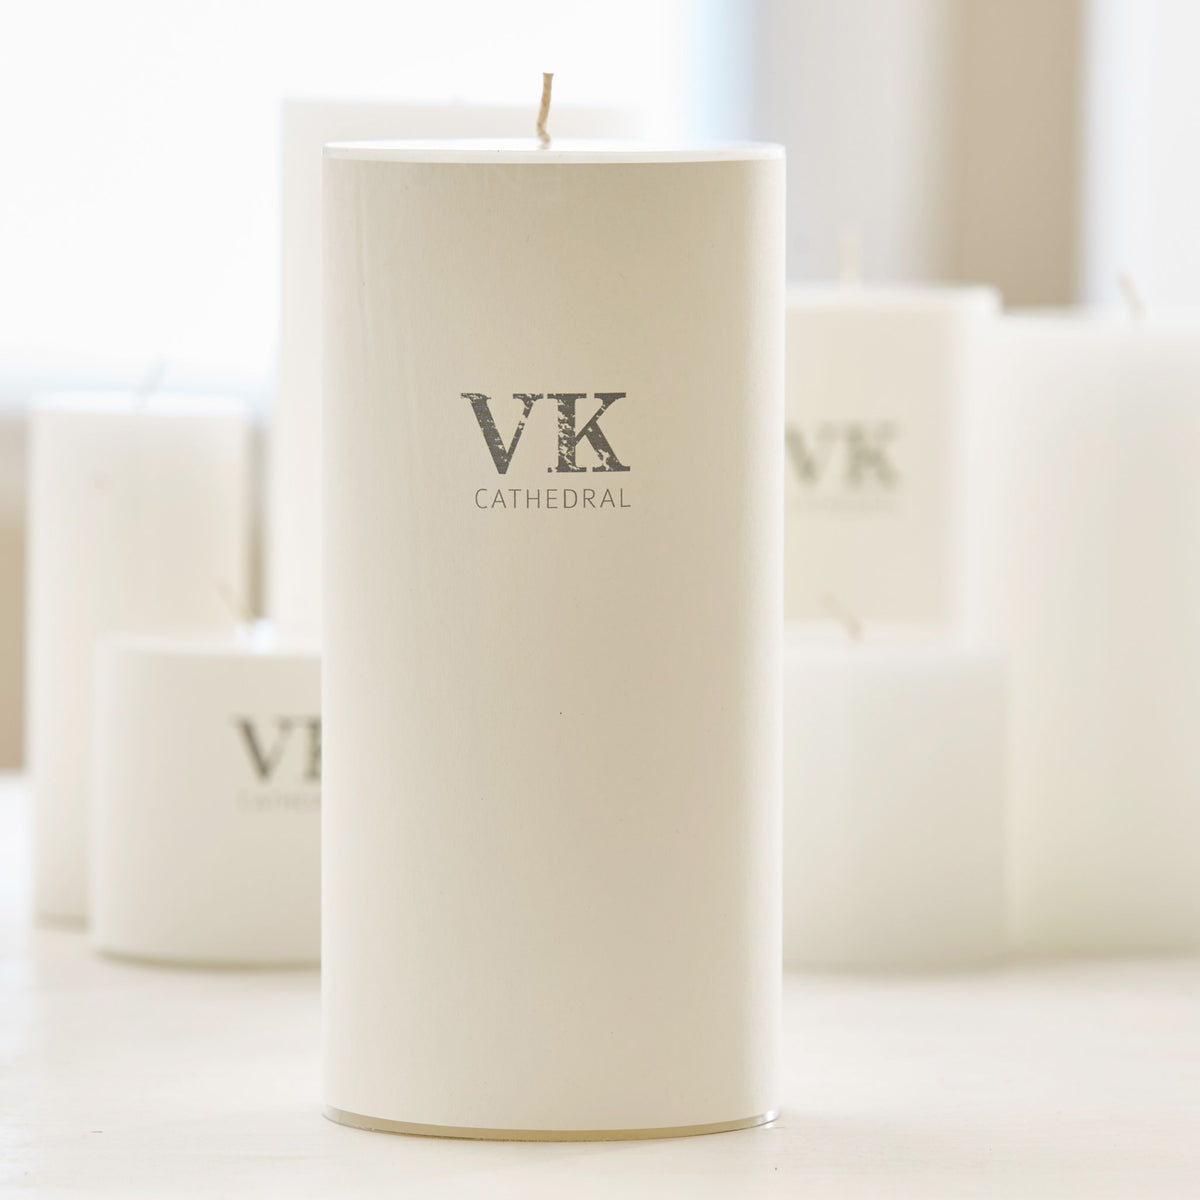 HAND-POURED WHITE CATHEDRAL PILLAR CANDLES